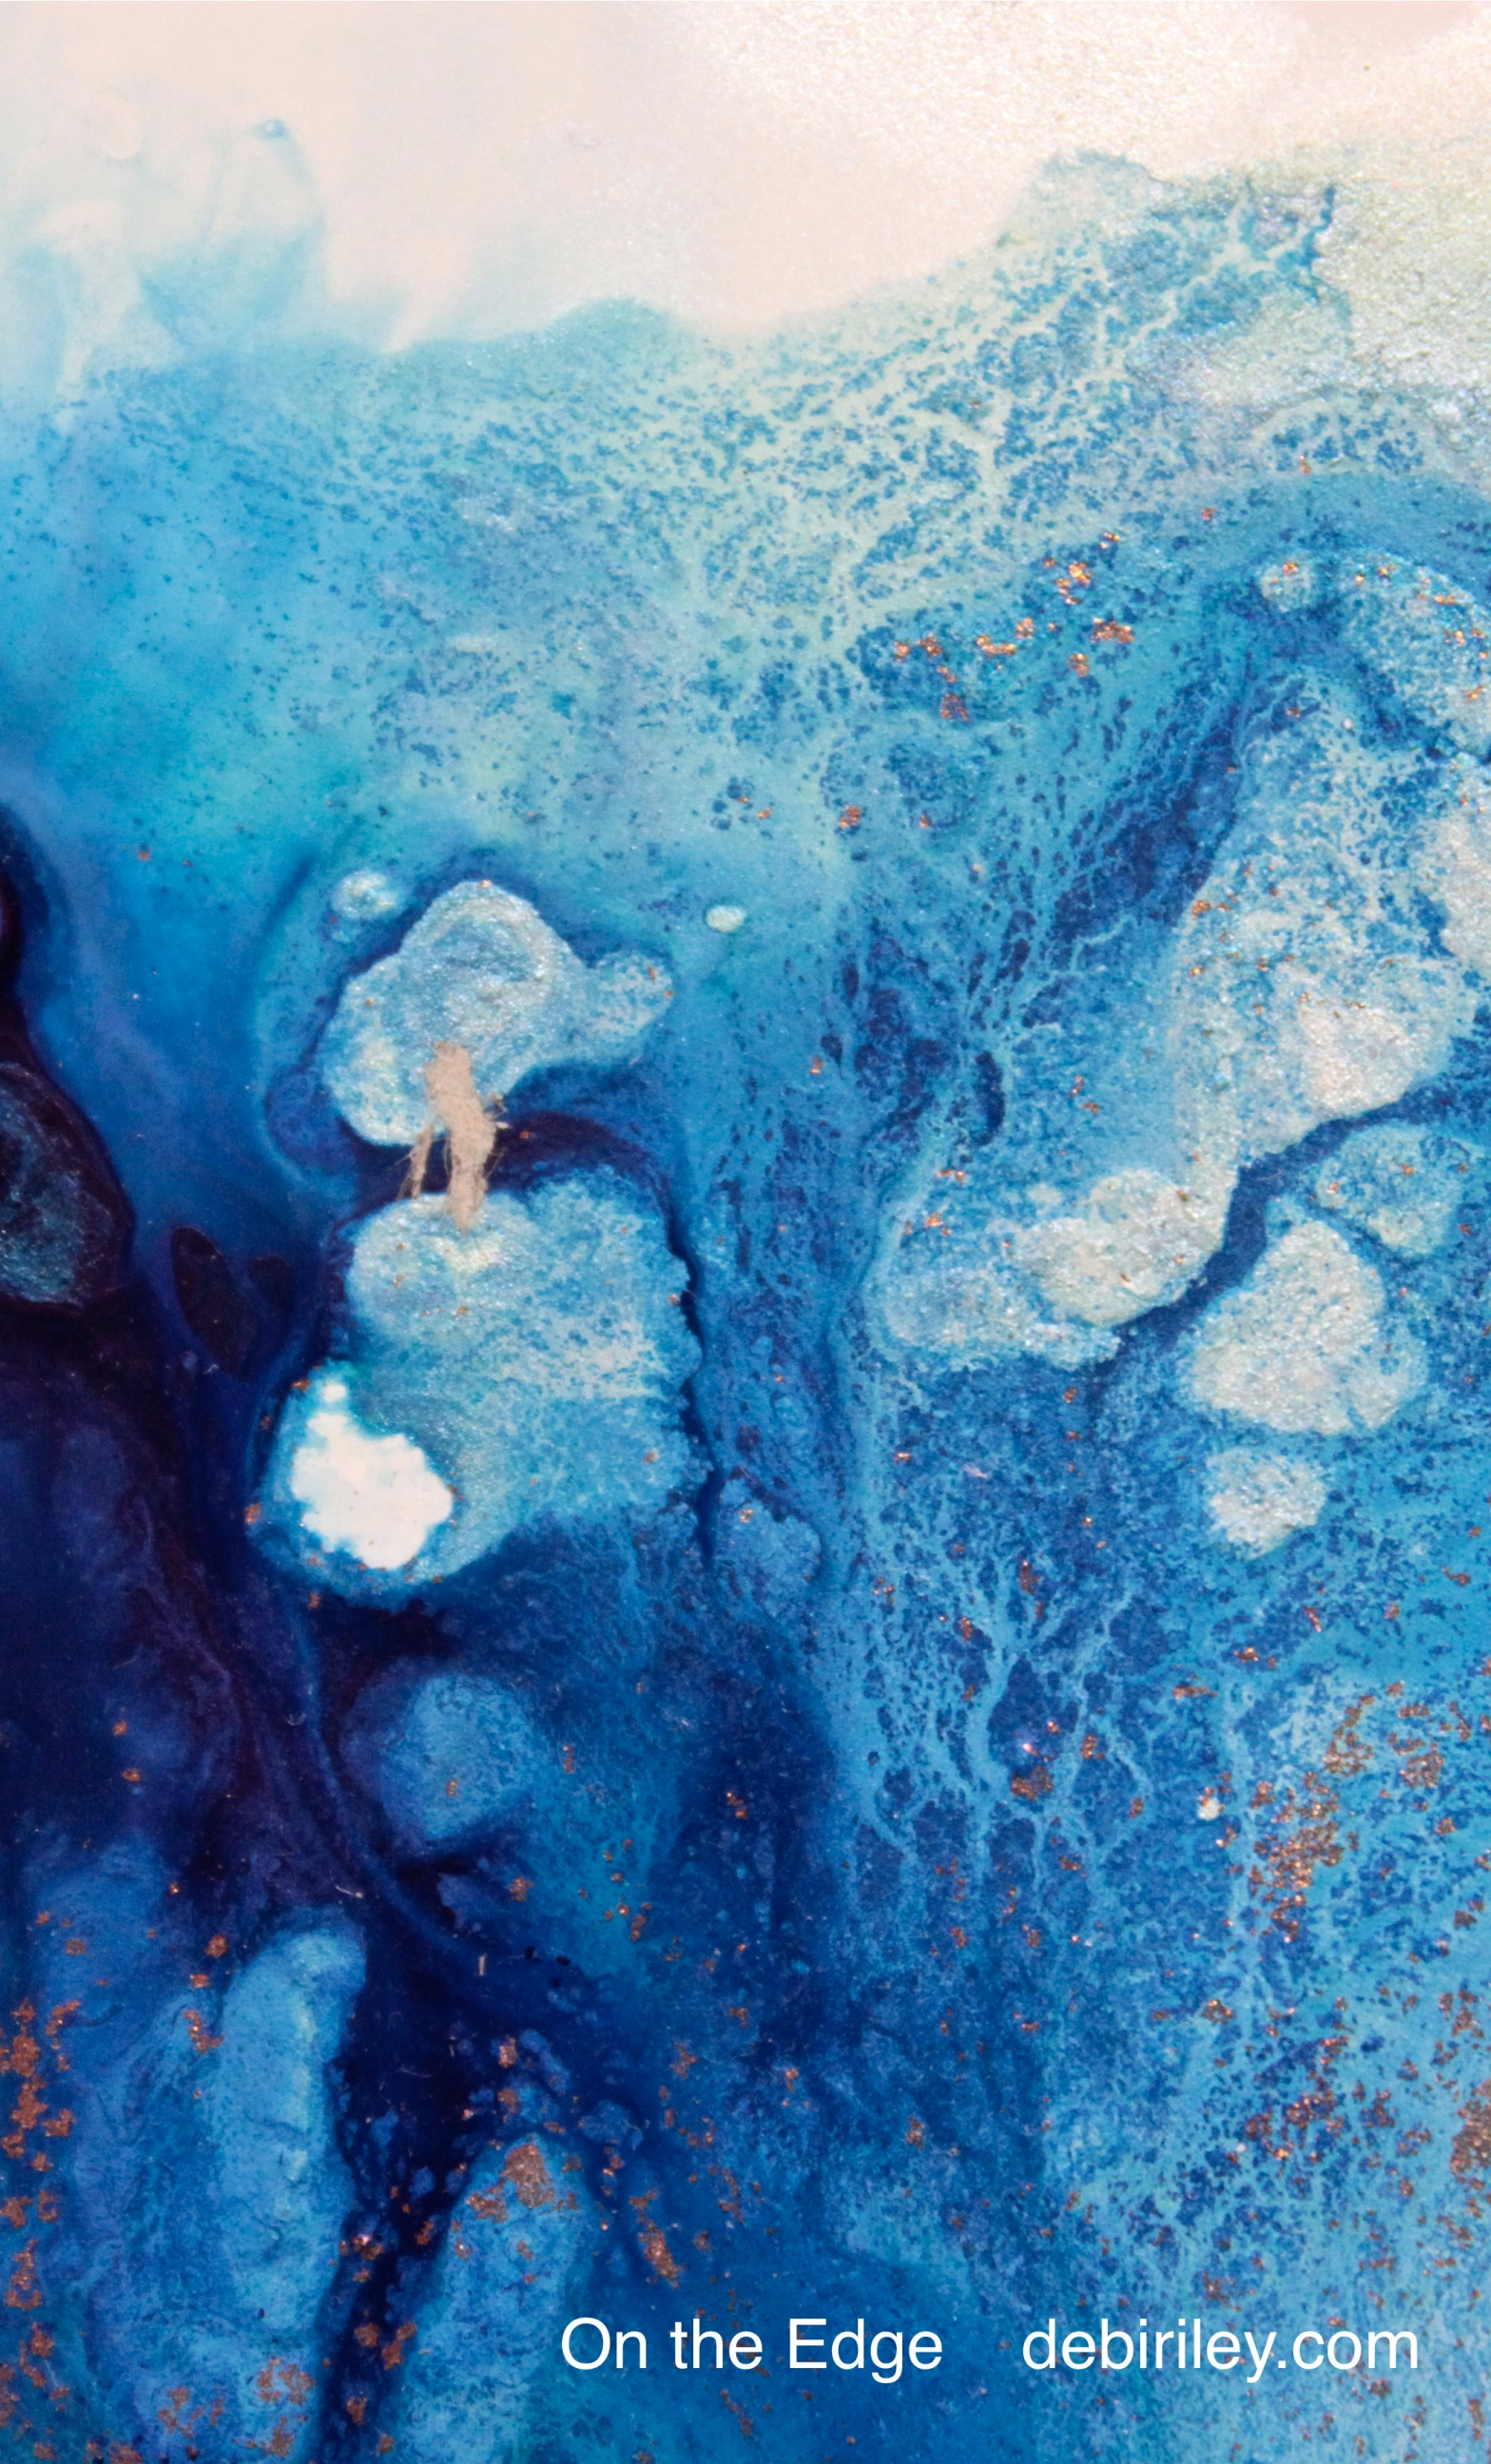 abstract painting in deep blues, ultramarine blue, prussian blue, easy art ideas for beginners, debiriley.com